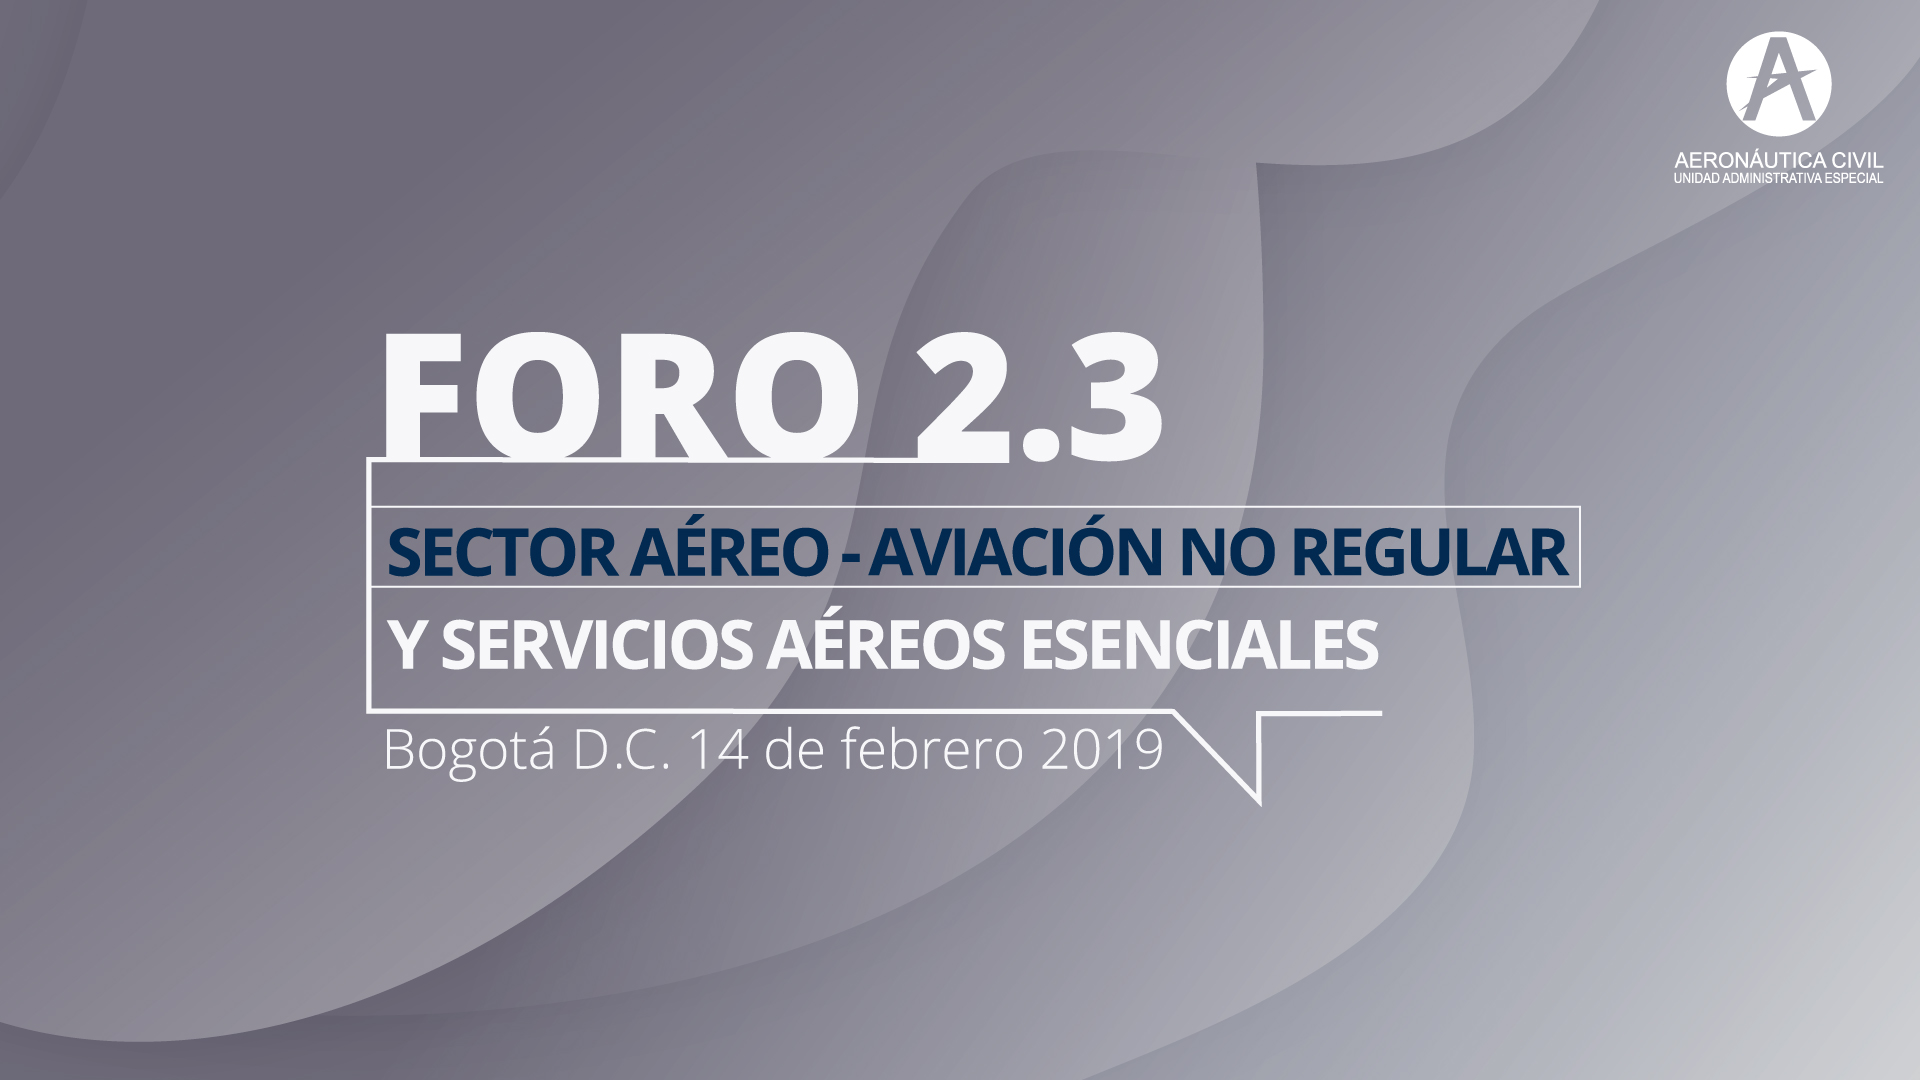 FORO-AVIACIÓN-NO-REGULAR-FINAL.jpg